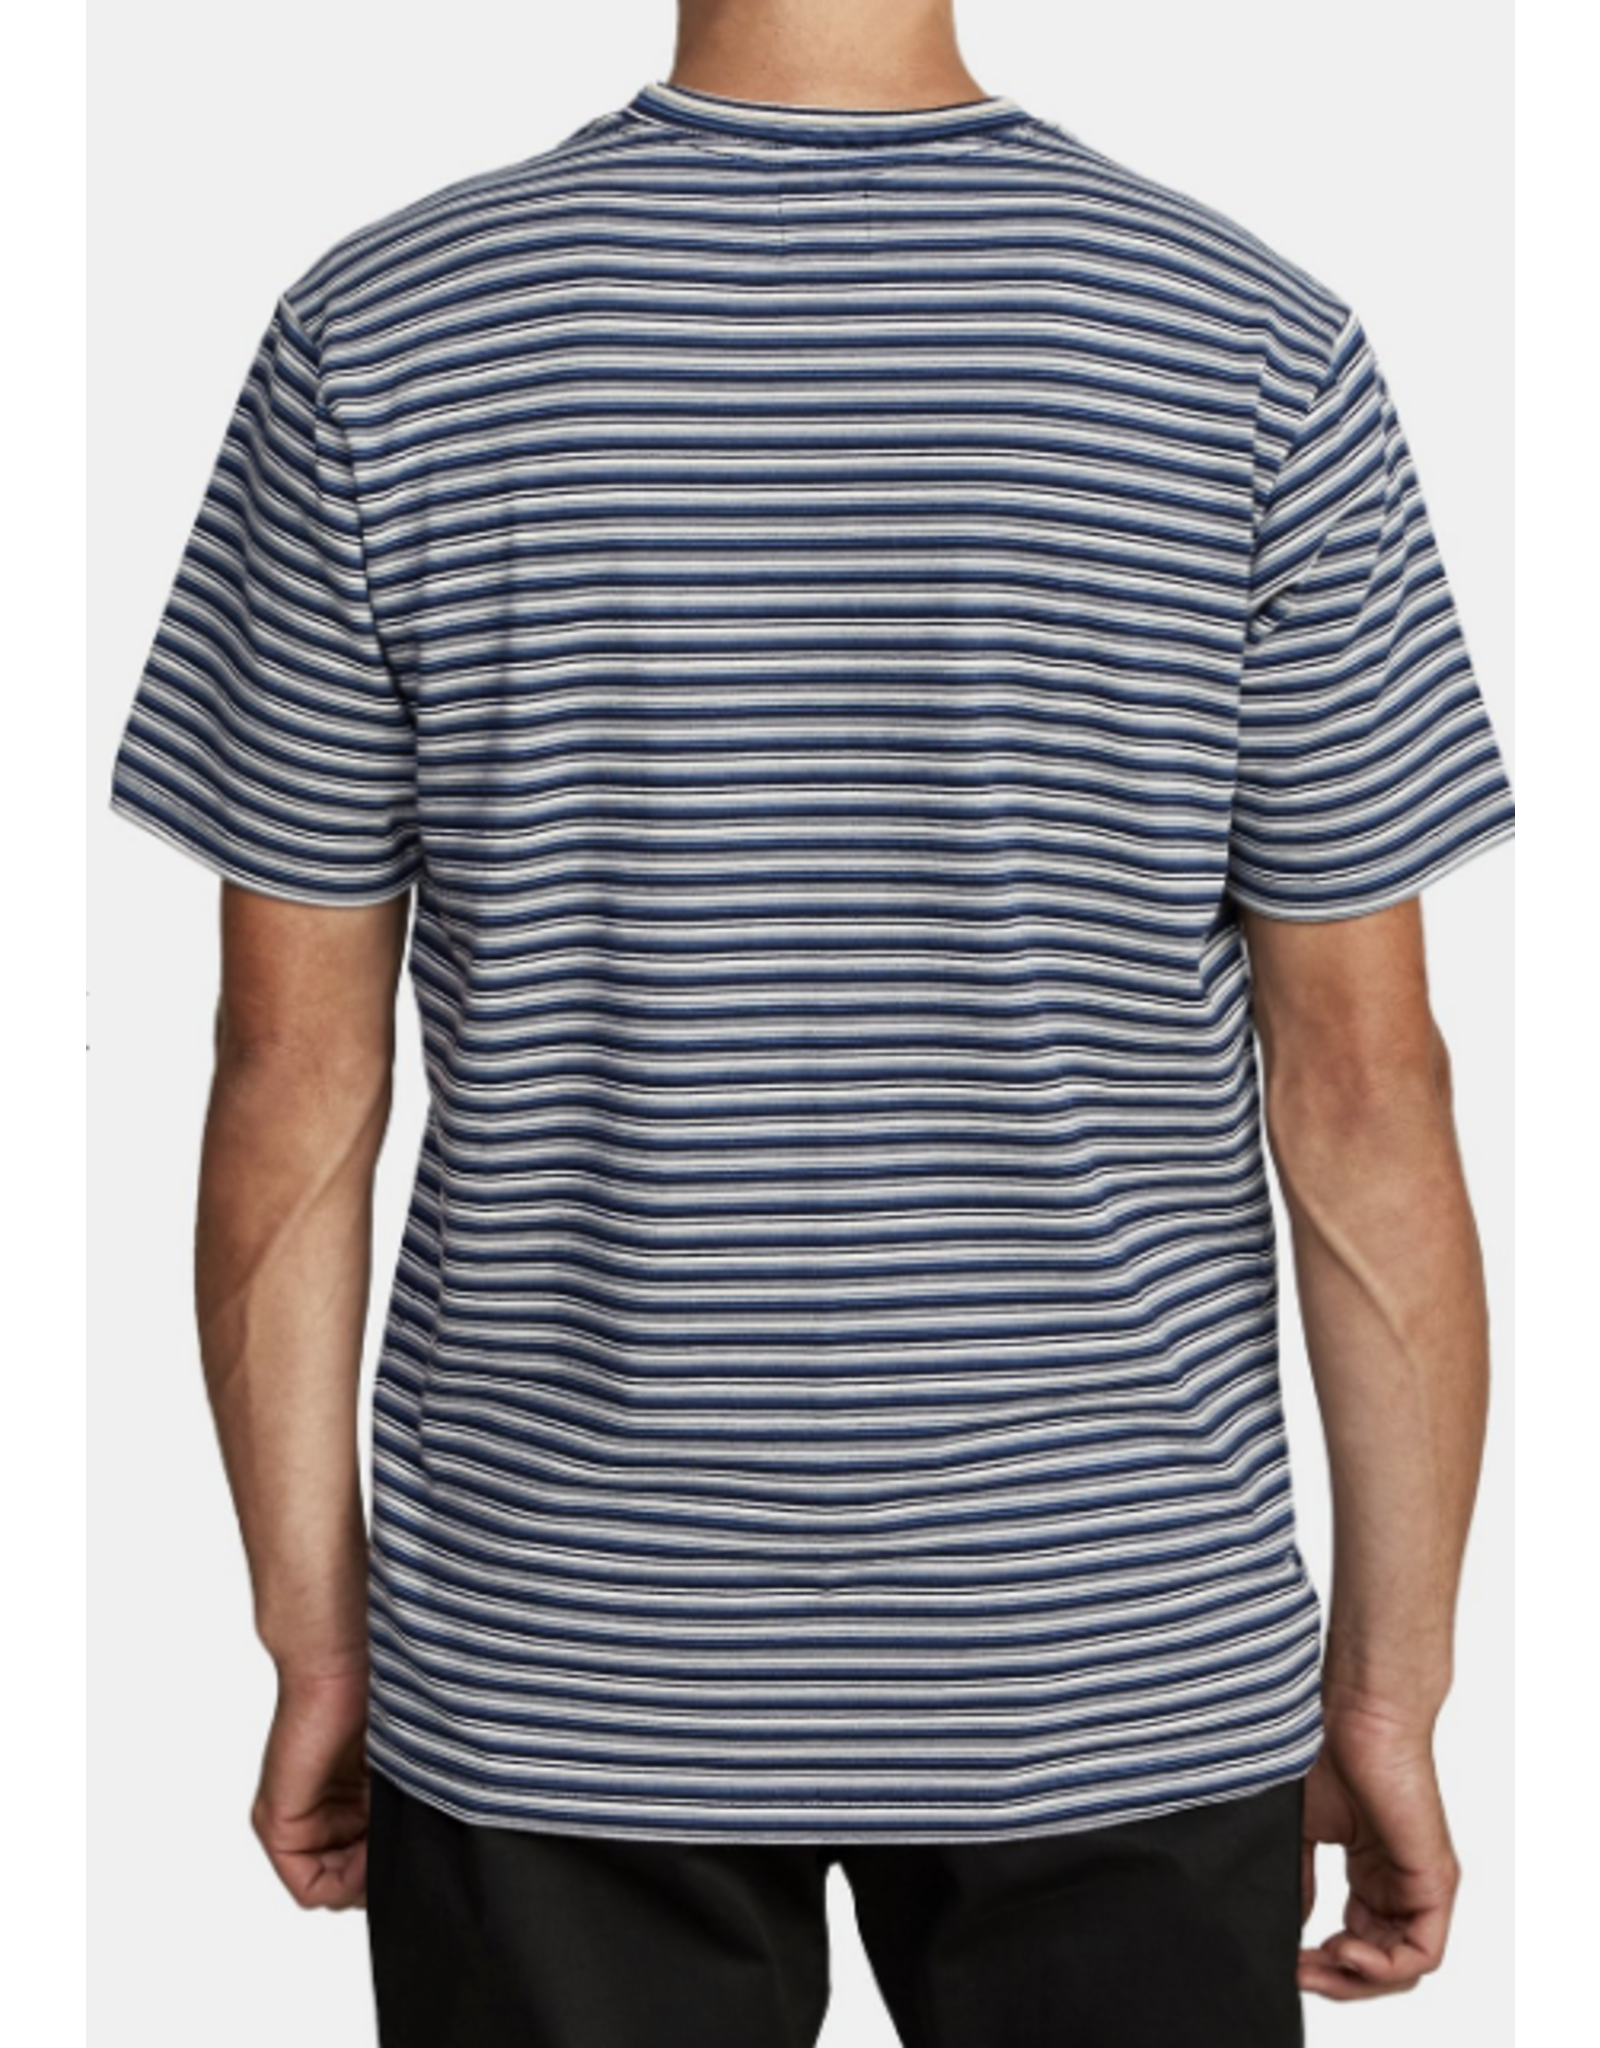 RVCA DOWNLINE STRIPE SHORT SLEEVE T-SHIRT